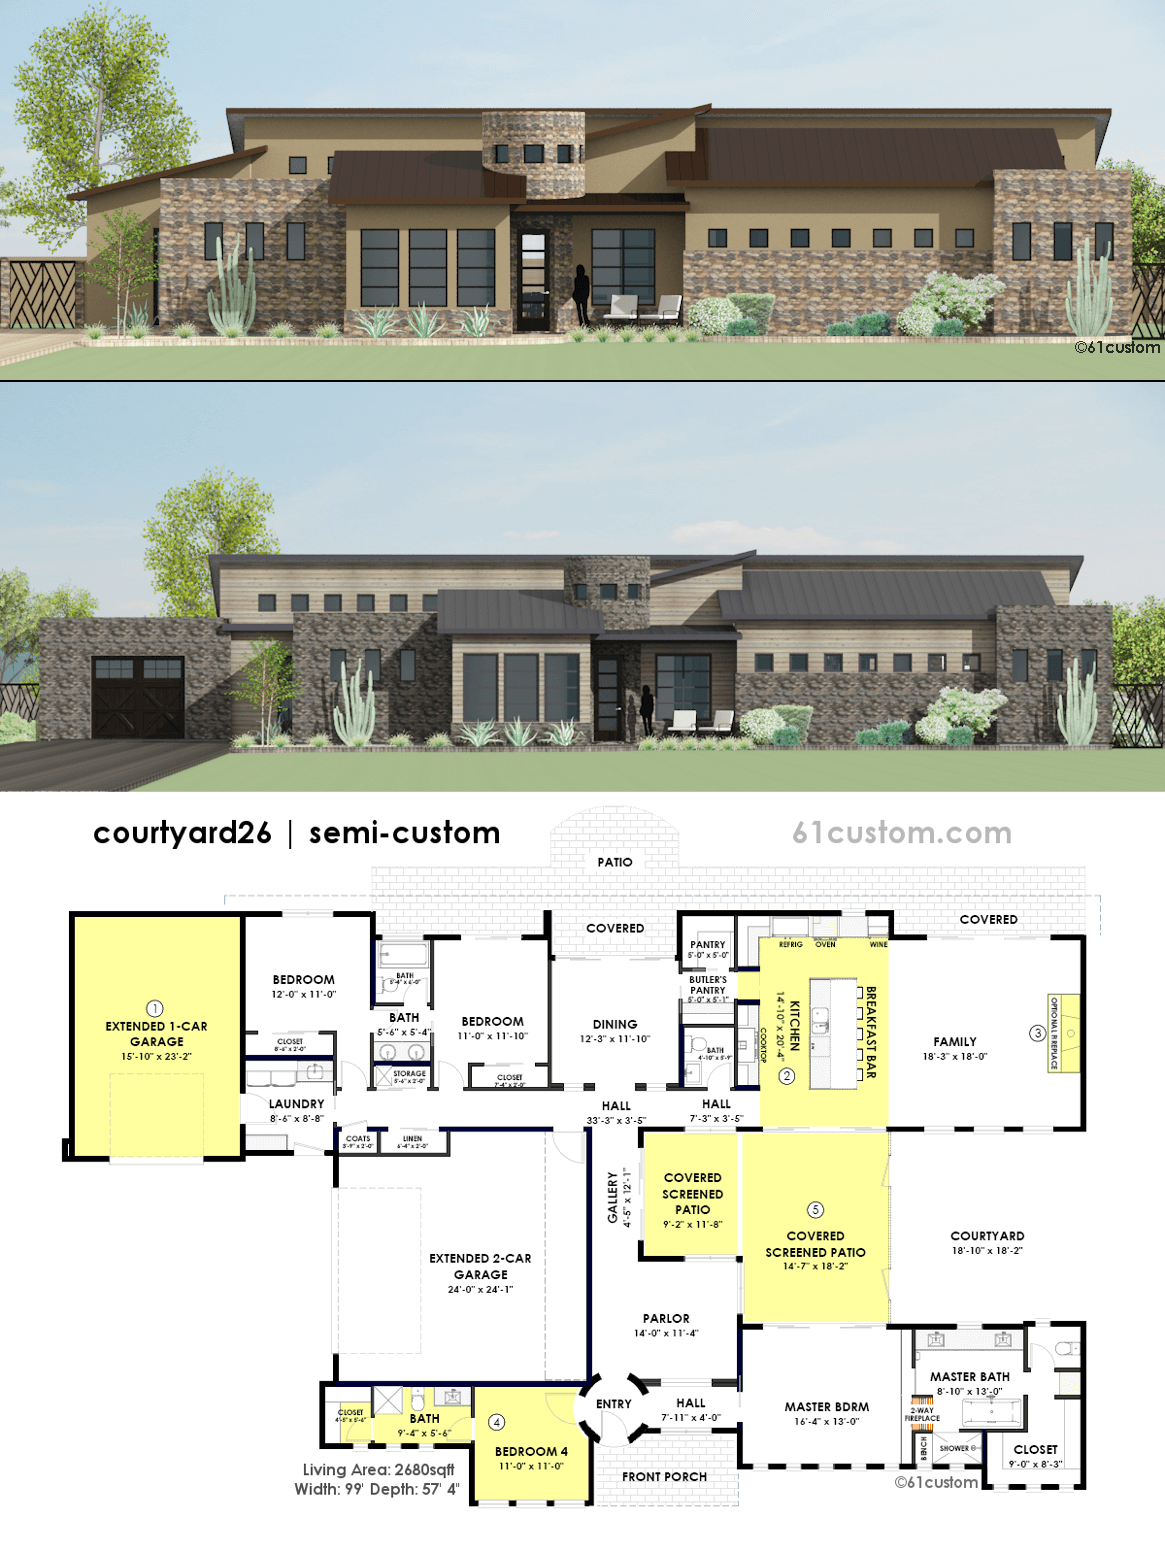 Contemporary side courtyard house plan 61custom for Modern house plans and designs